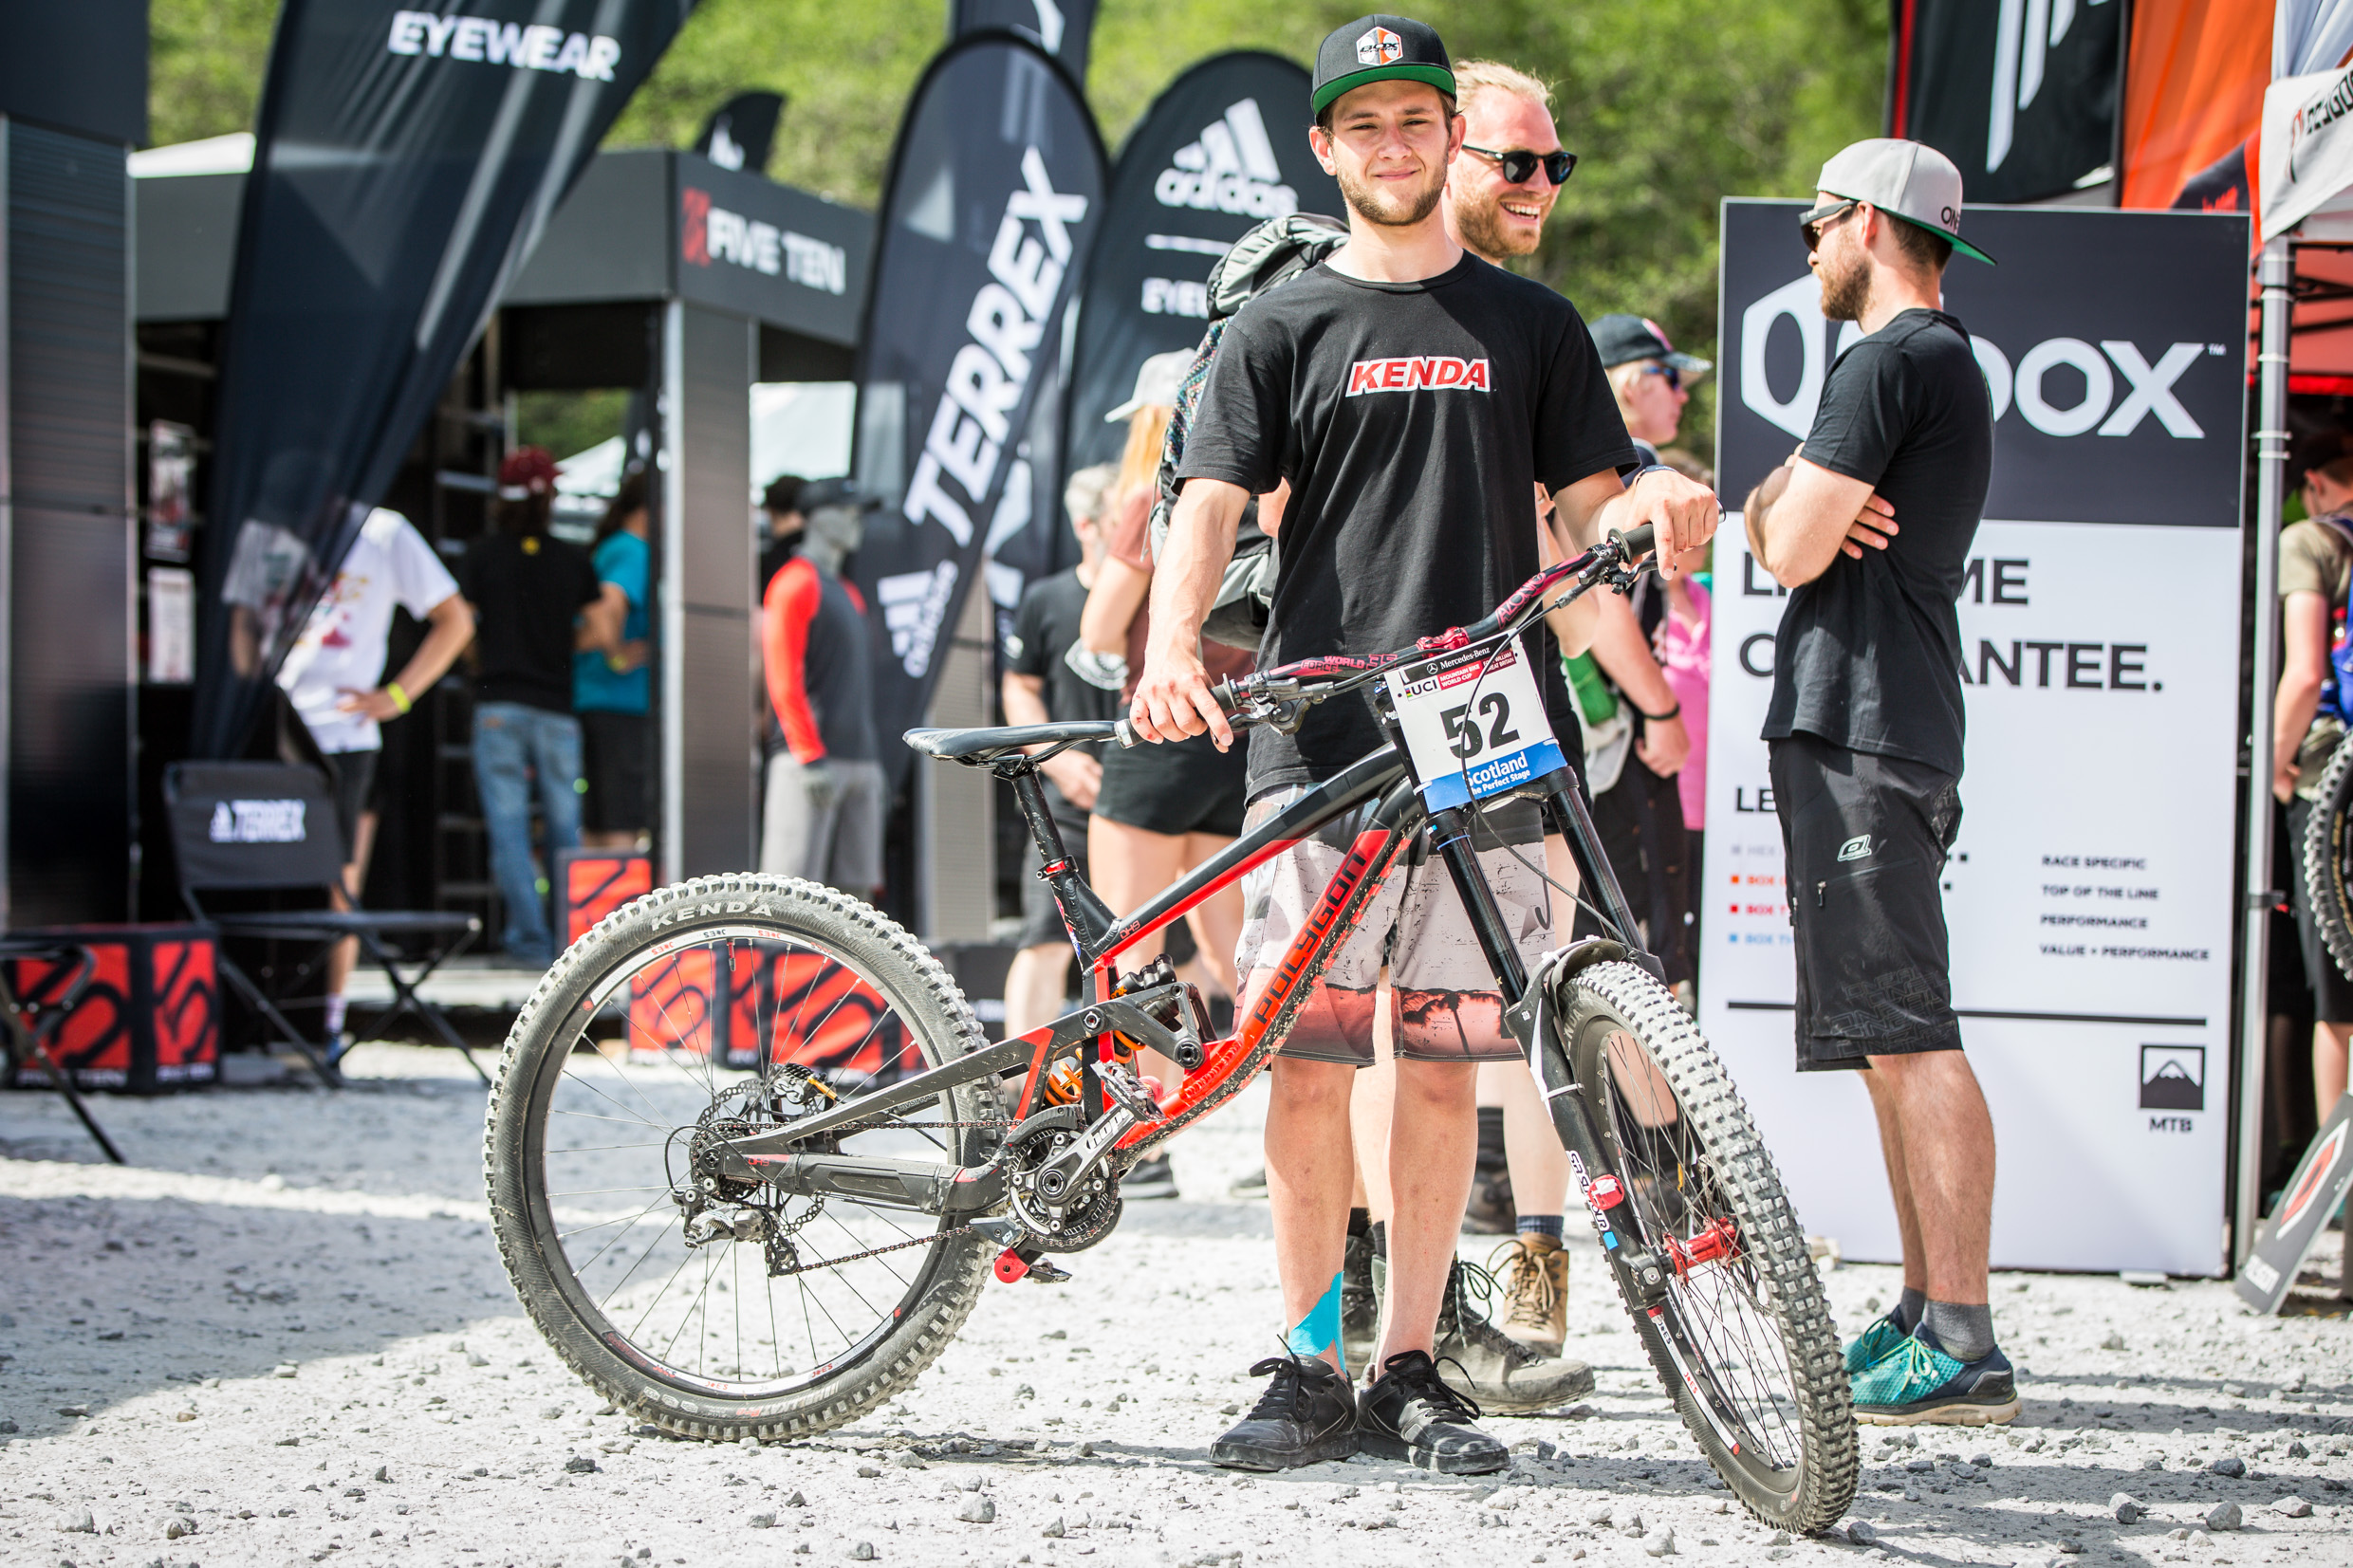 ---Fort William race report day 2 (1 of 2)